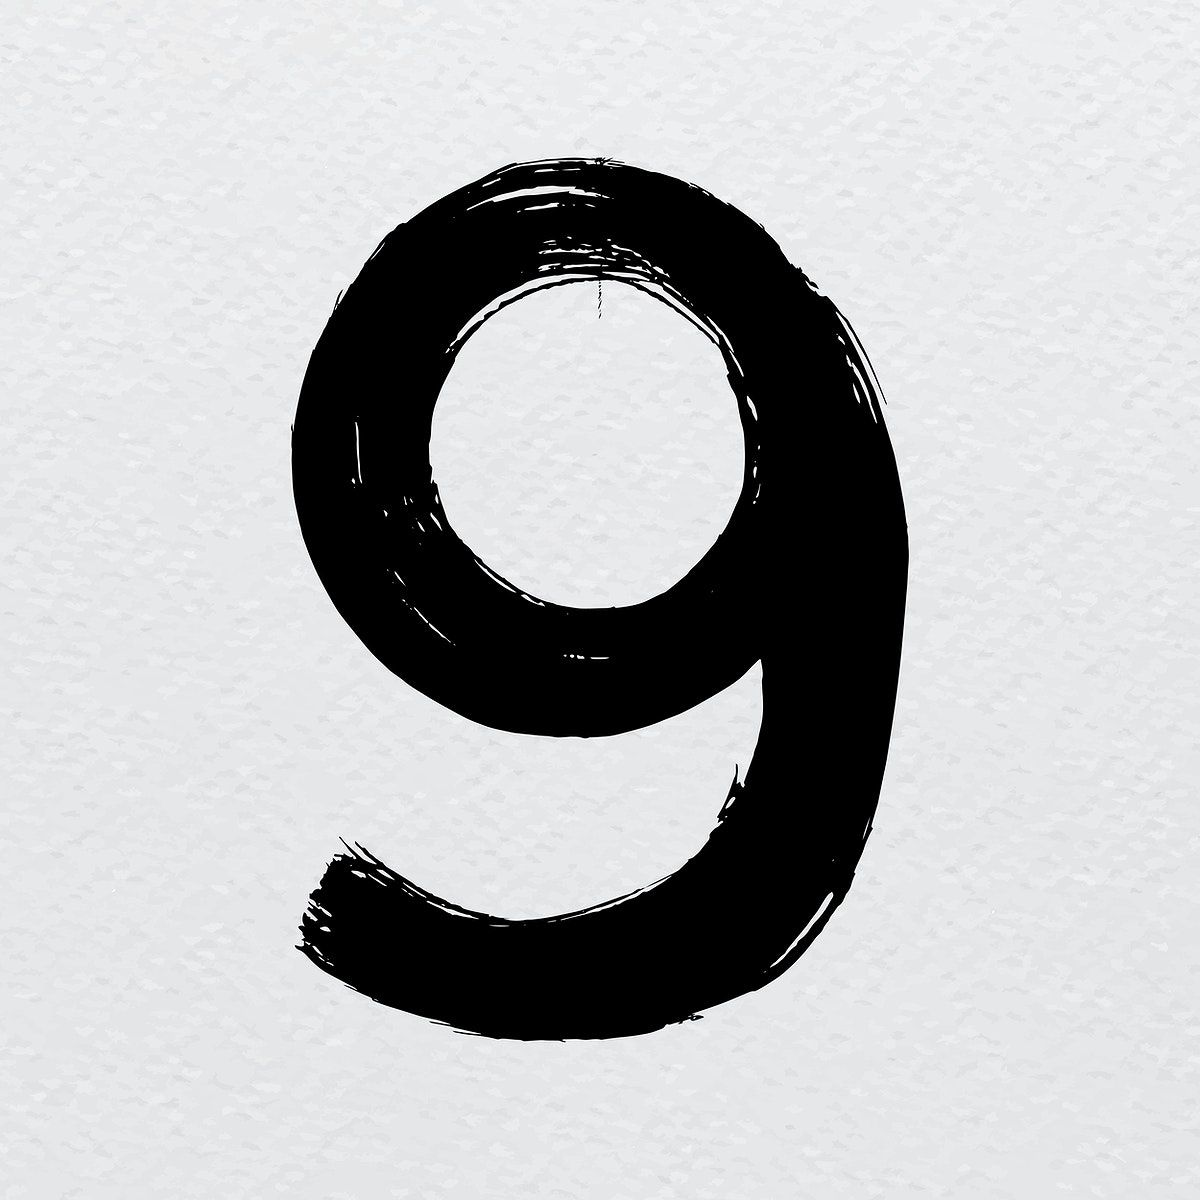 Number 9 Brush Stroke Distressed Style Typography Vector Free Image By Rawpixel Com Mind Typography Brush Strokes Vector Free